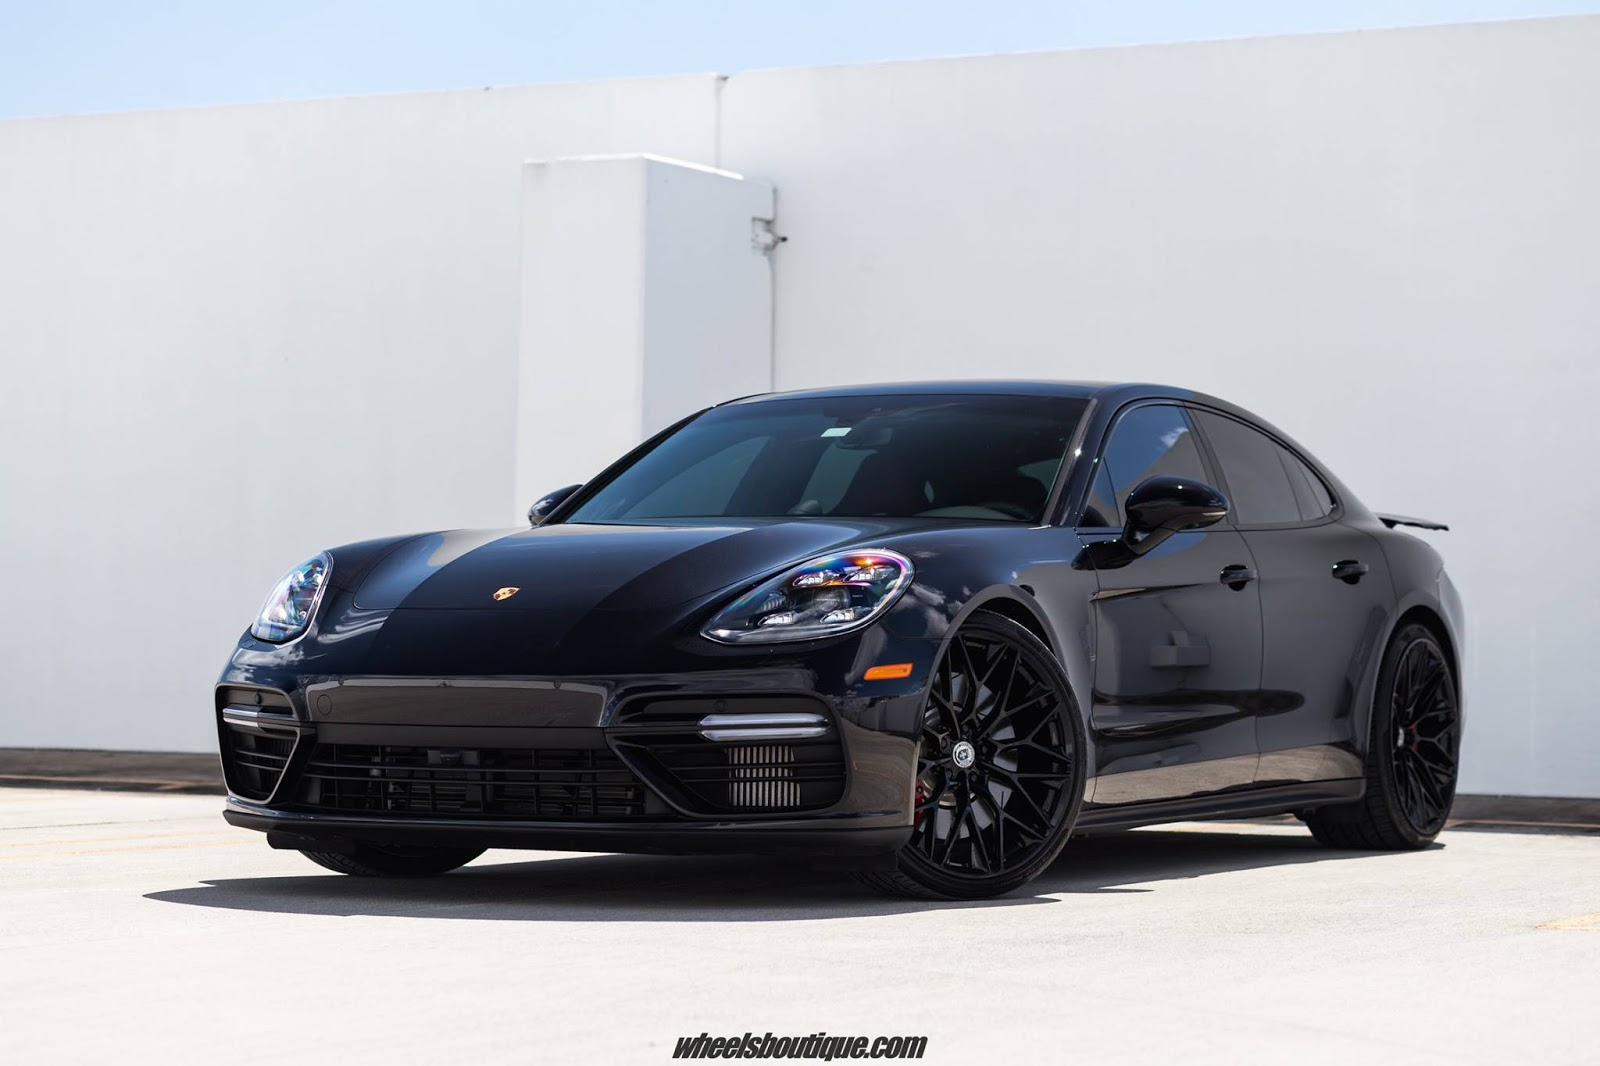 New Porsche Panamera Looks Even Better With Aftermarket